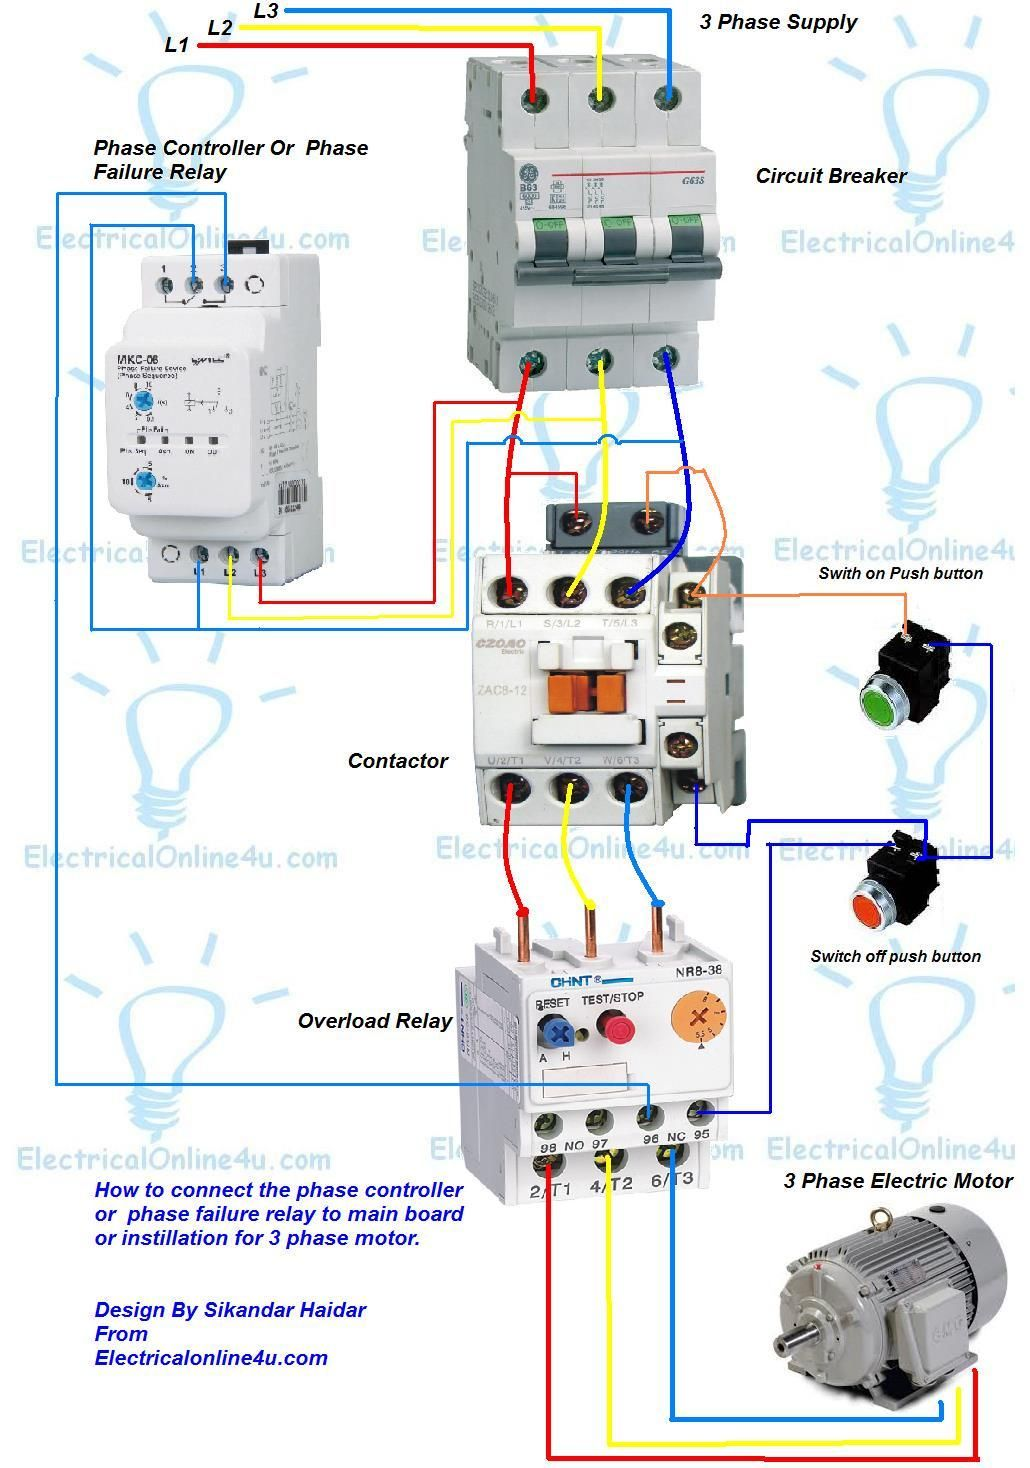 hight resolution of phase controller wiring phase failure relay diagram di on line 3 phase water pump control panel wiring diagram 3 phase control panel wiring